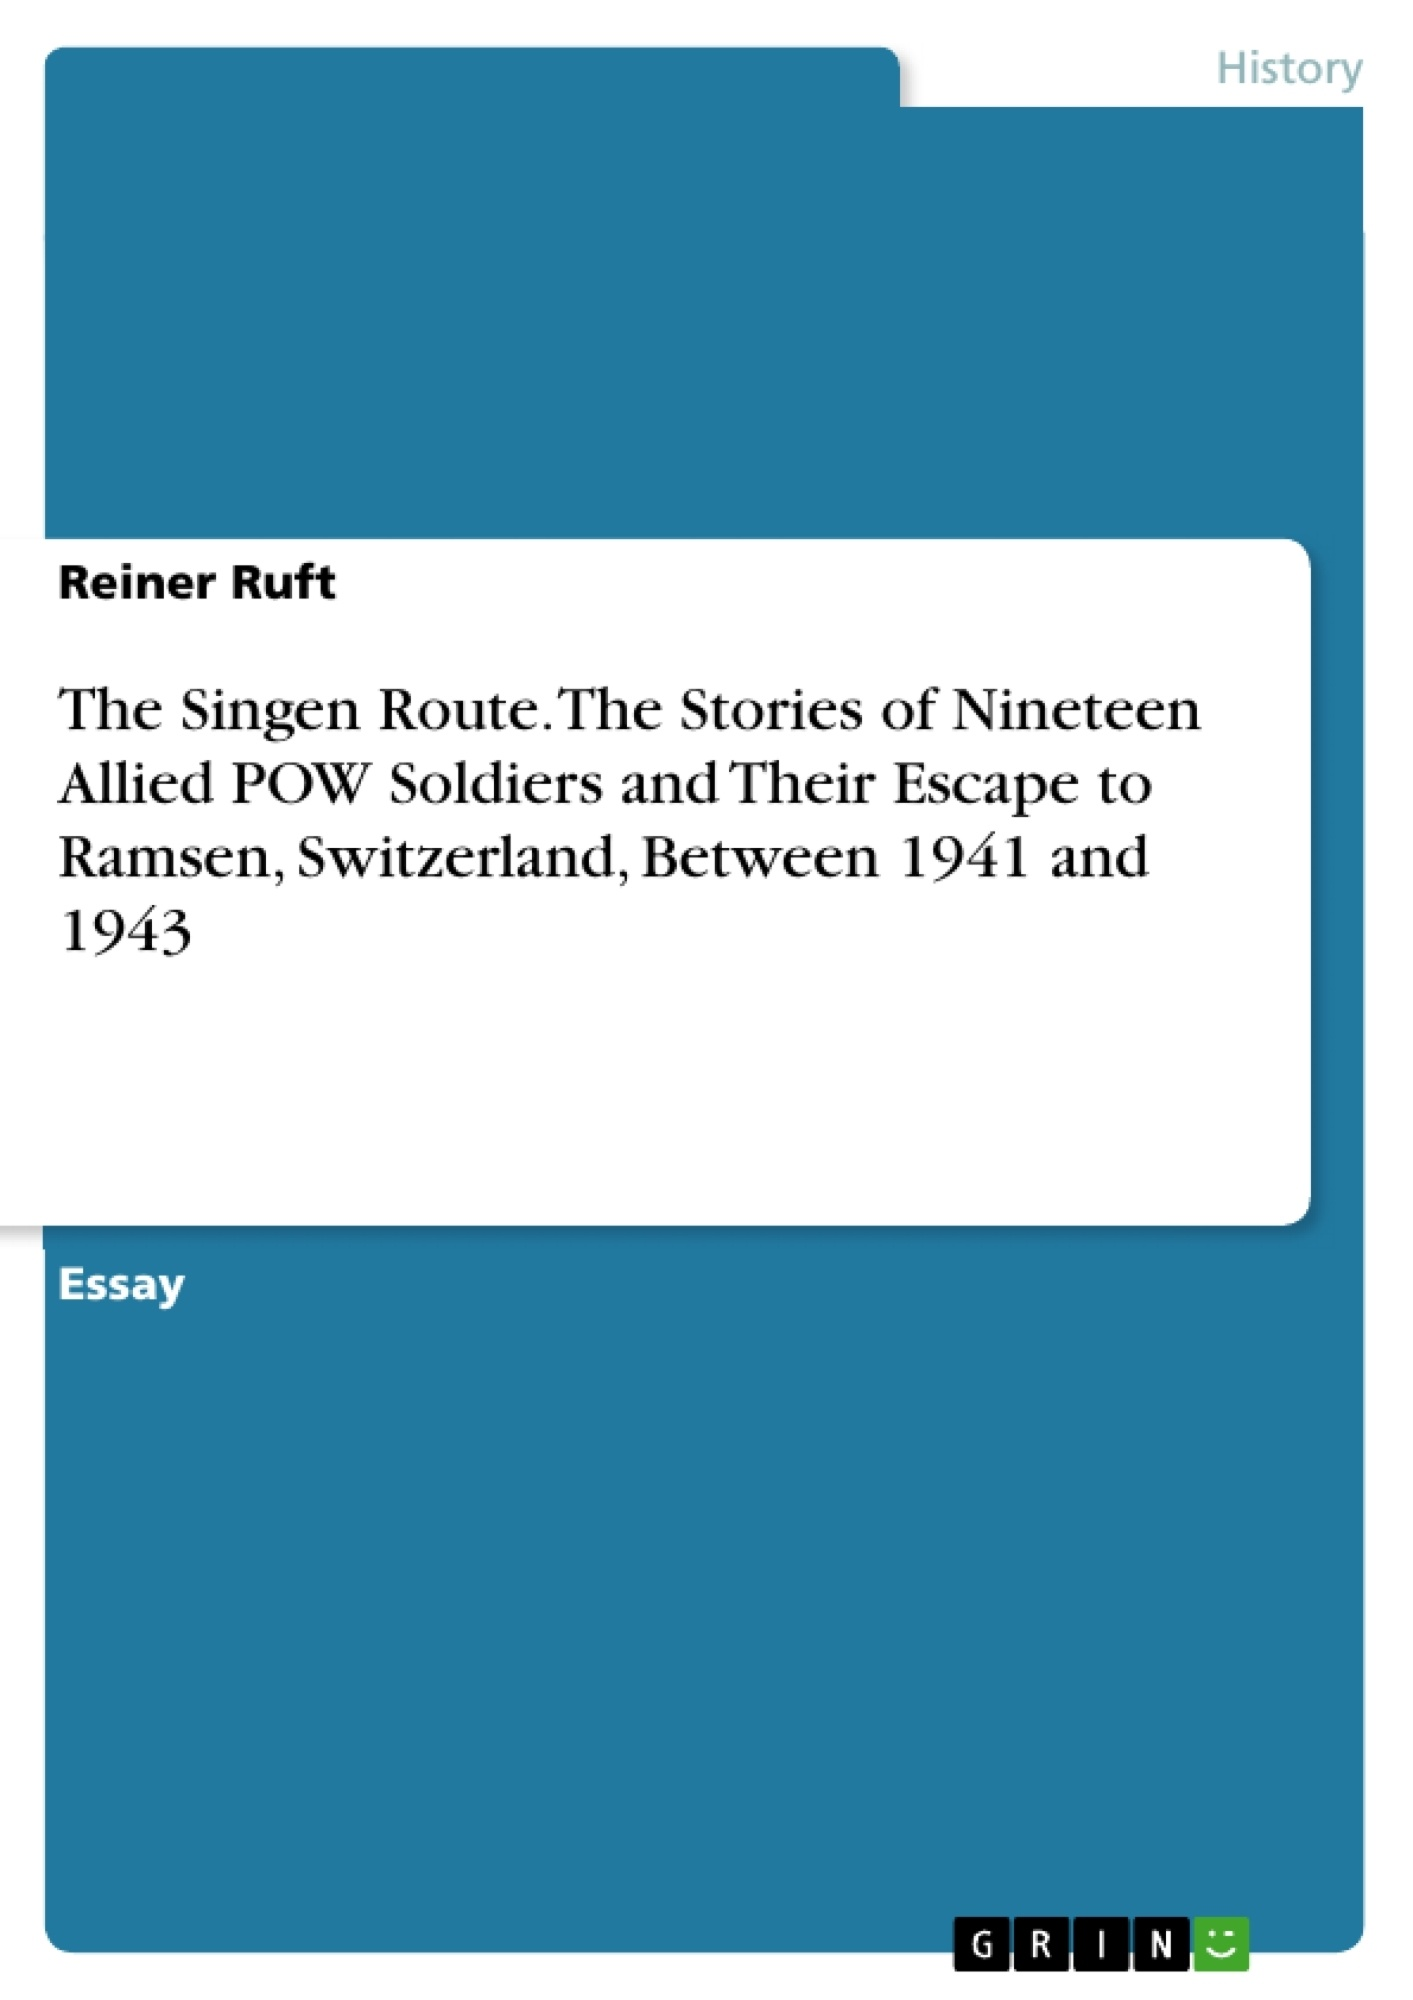 Title: The Singen Route. The Stories of Nineteen Allied POW Soldiers and Their Escape to Ramsen, Switzerland, Between 1941 and 1943